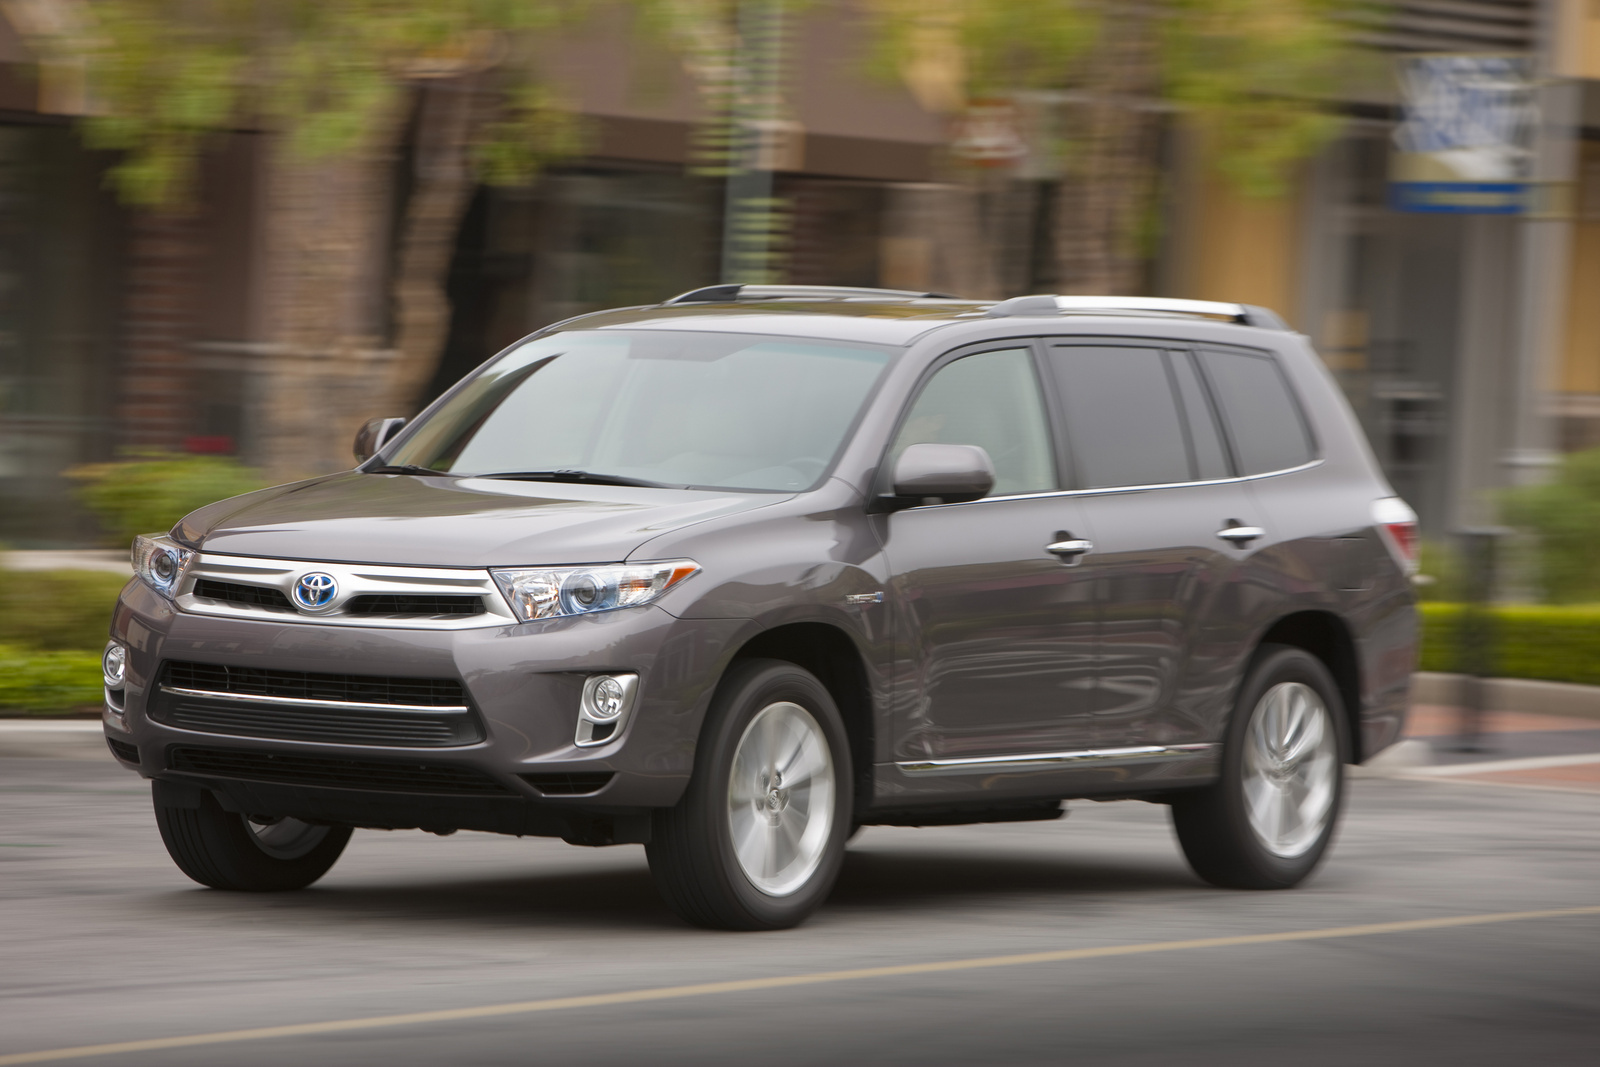 2013 toyota highlander hybrid overview cargurus. Black Bedroom Furniture Sets. Home Design Ideas